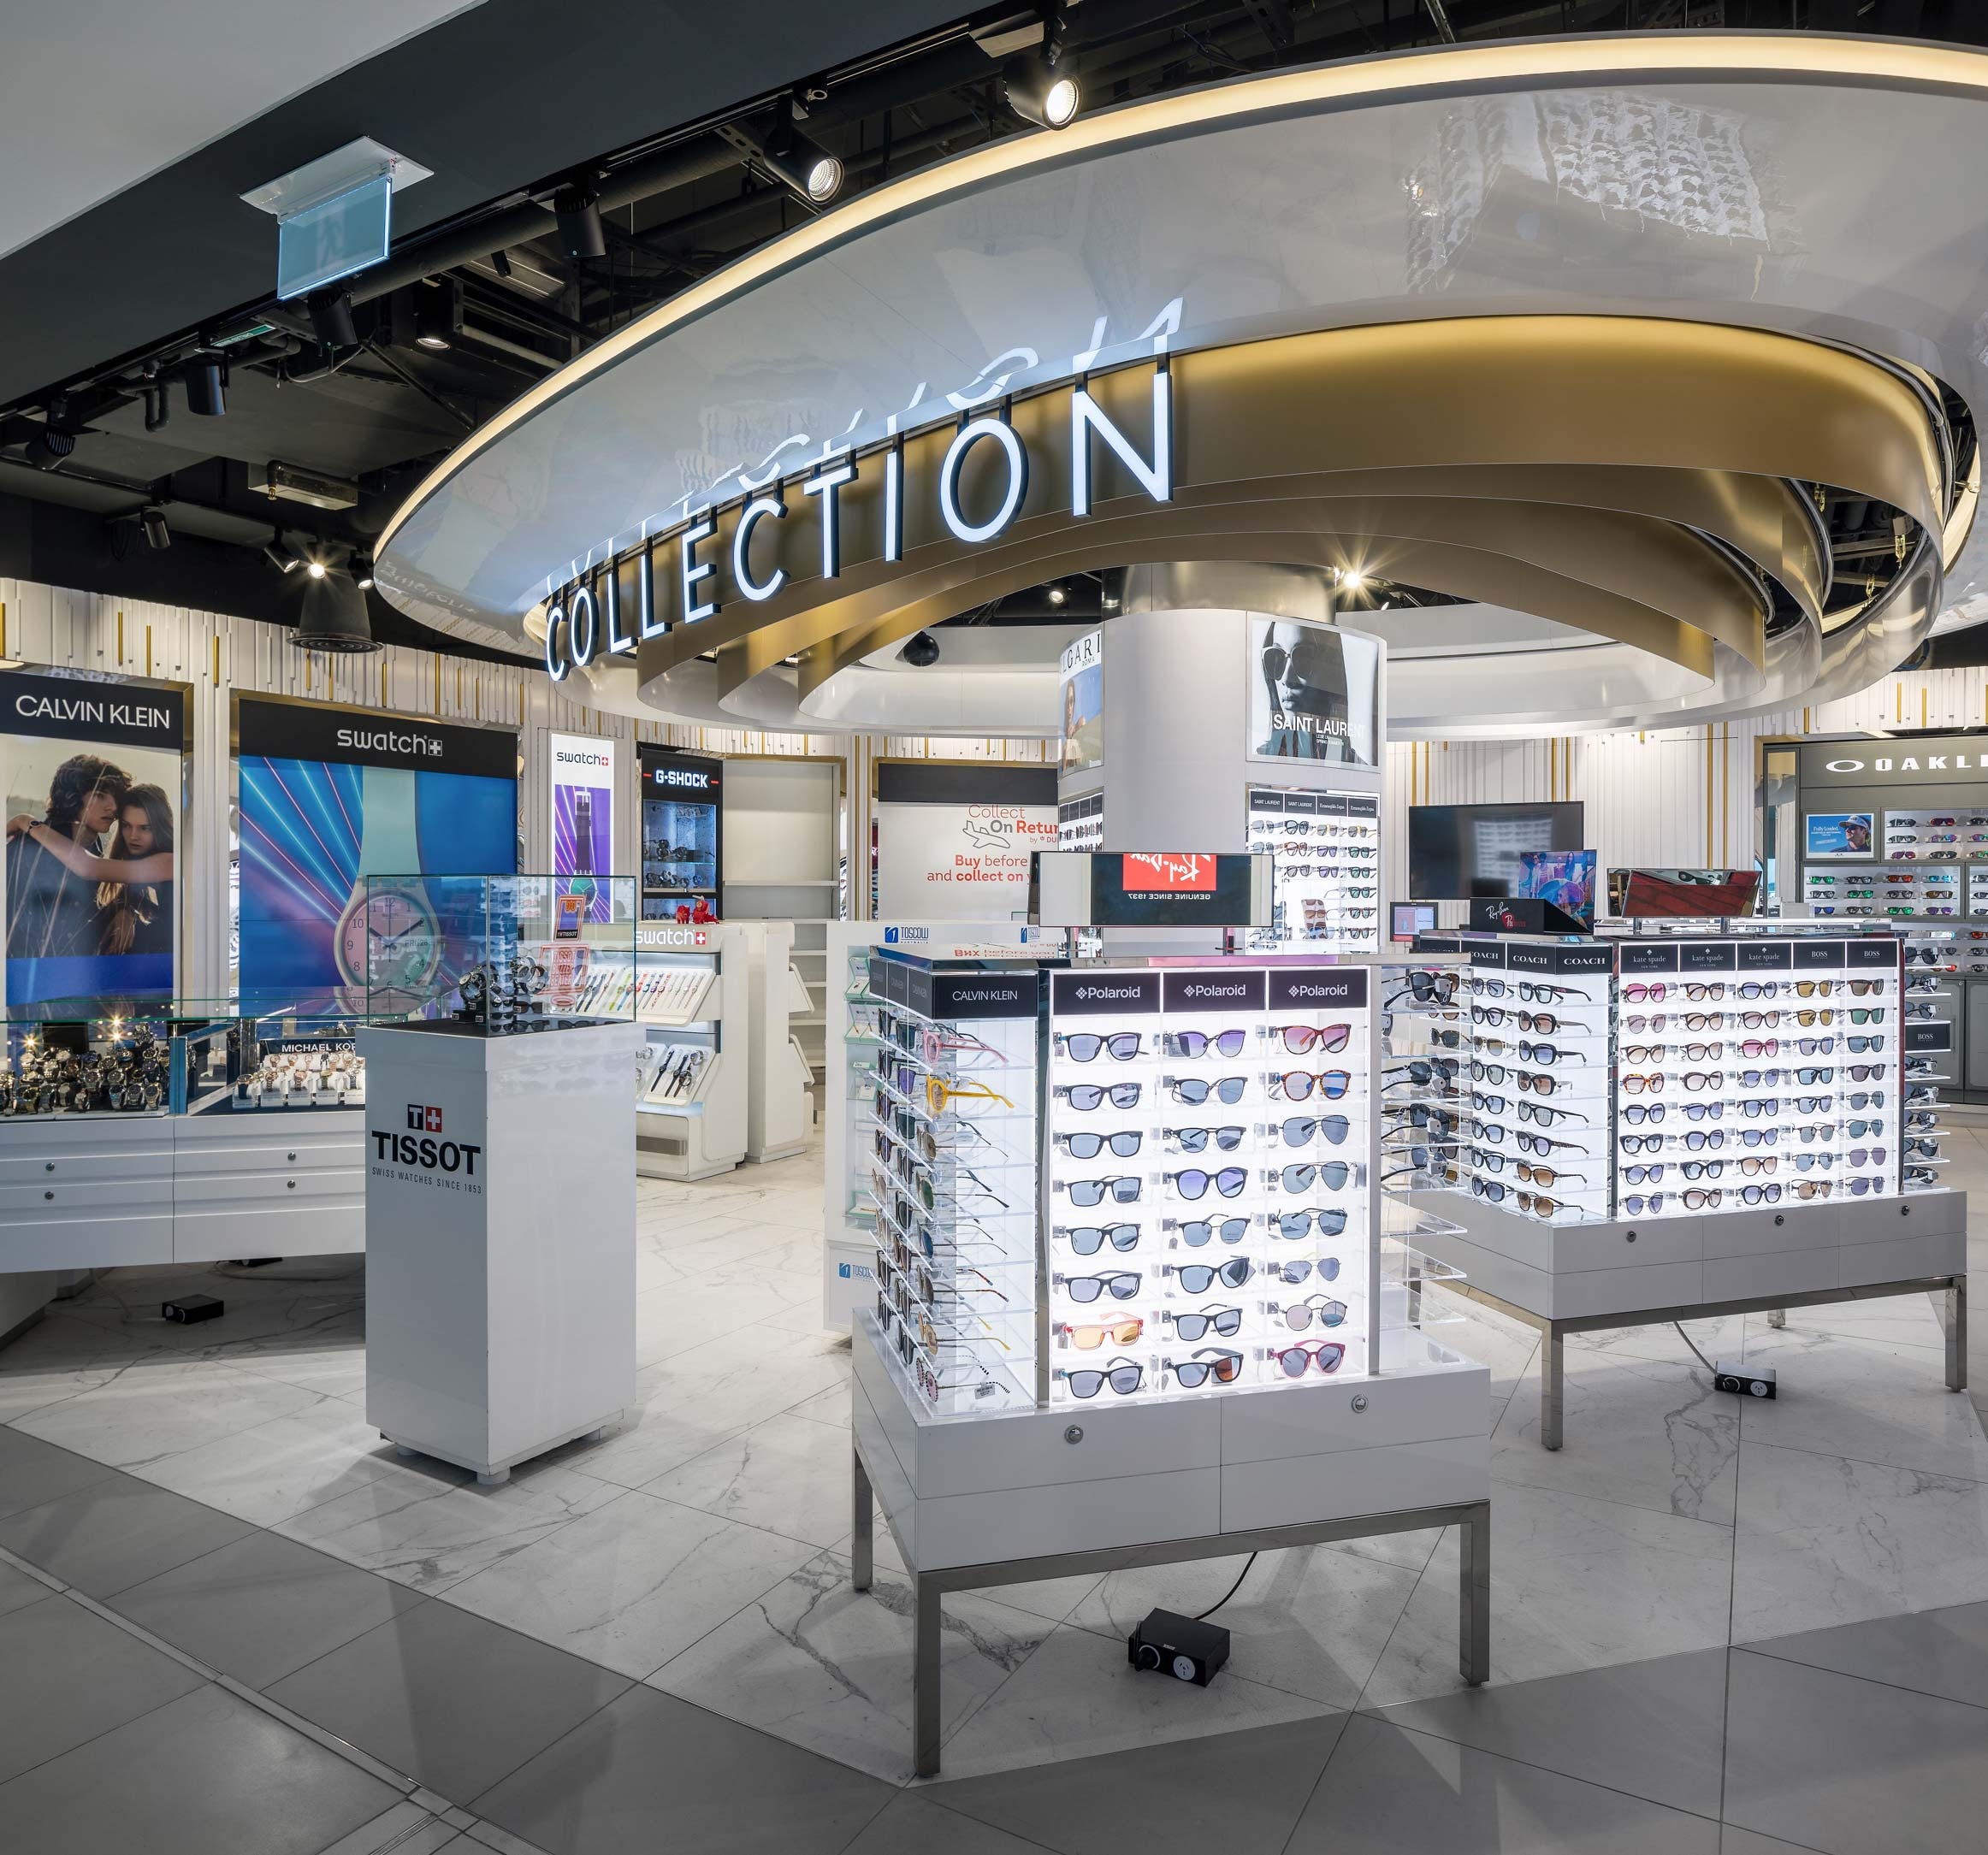 White Duty Free sunglass and watch kiosks with large neon Collection sign at Perth International Airport